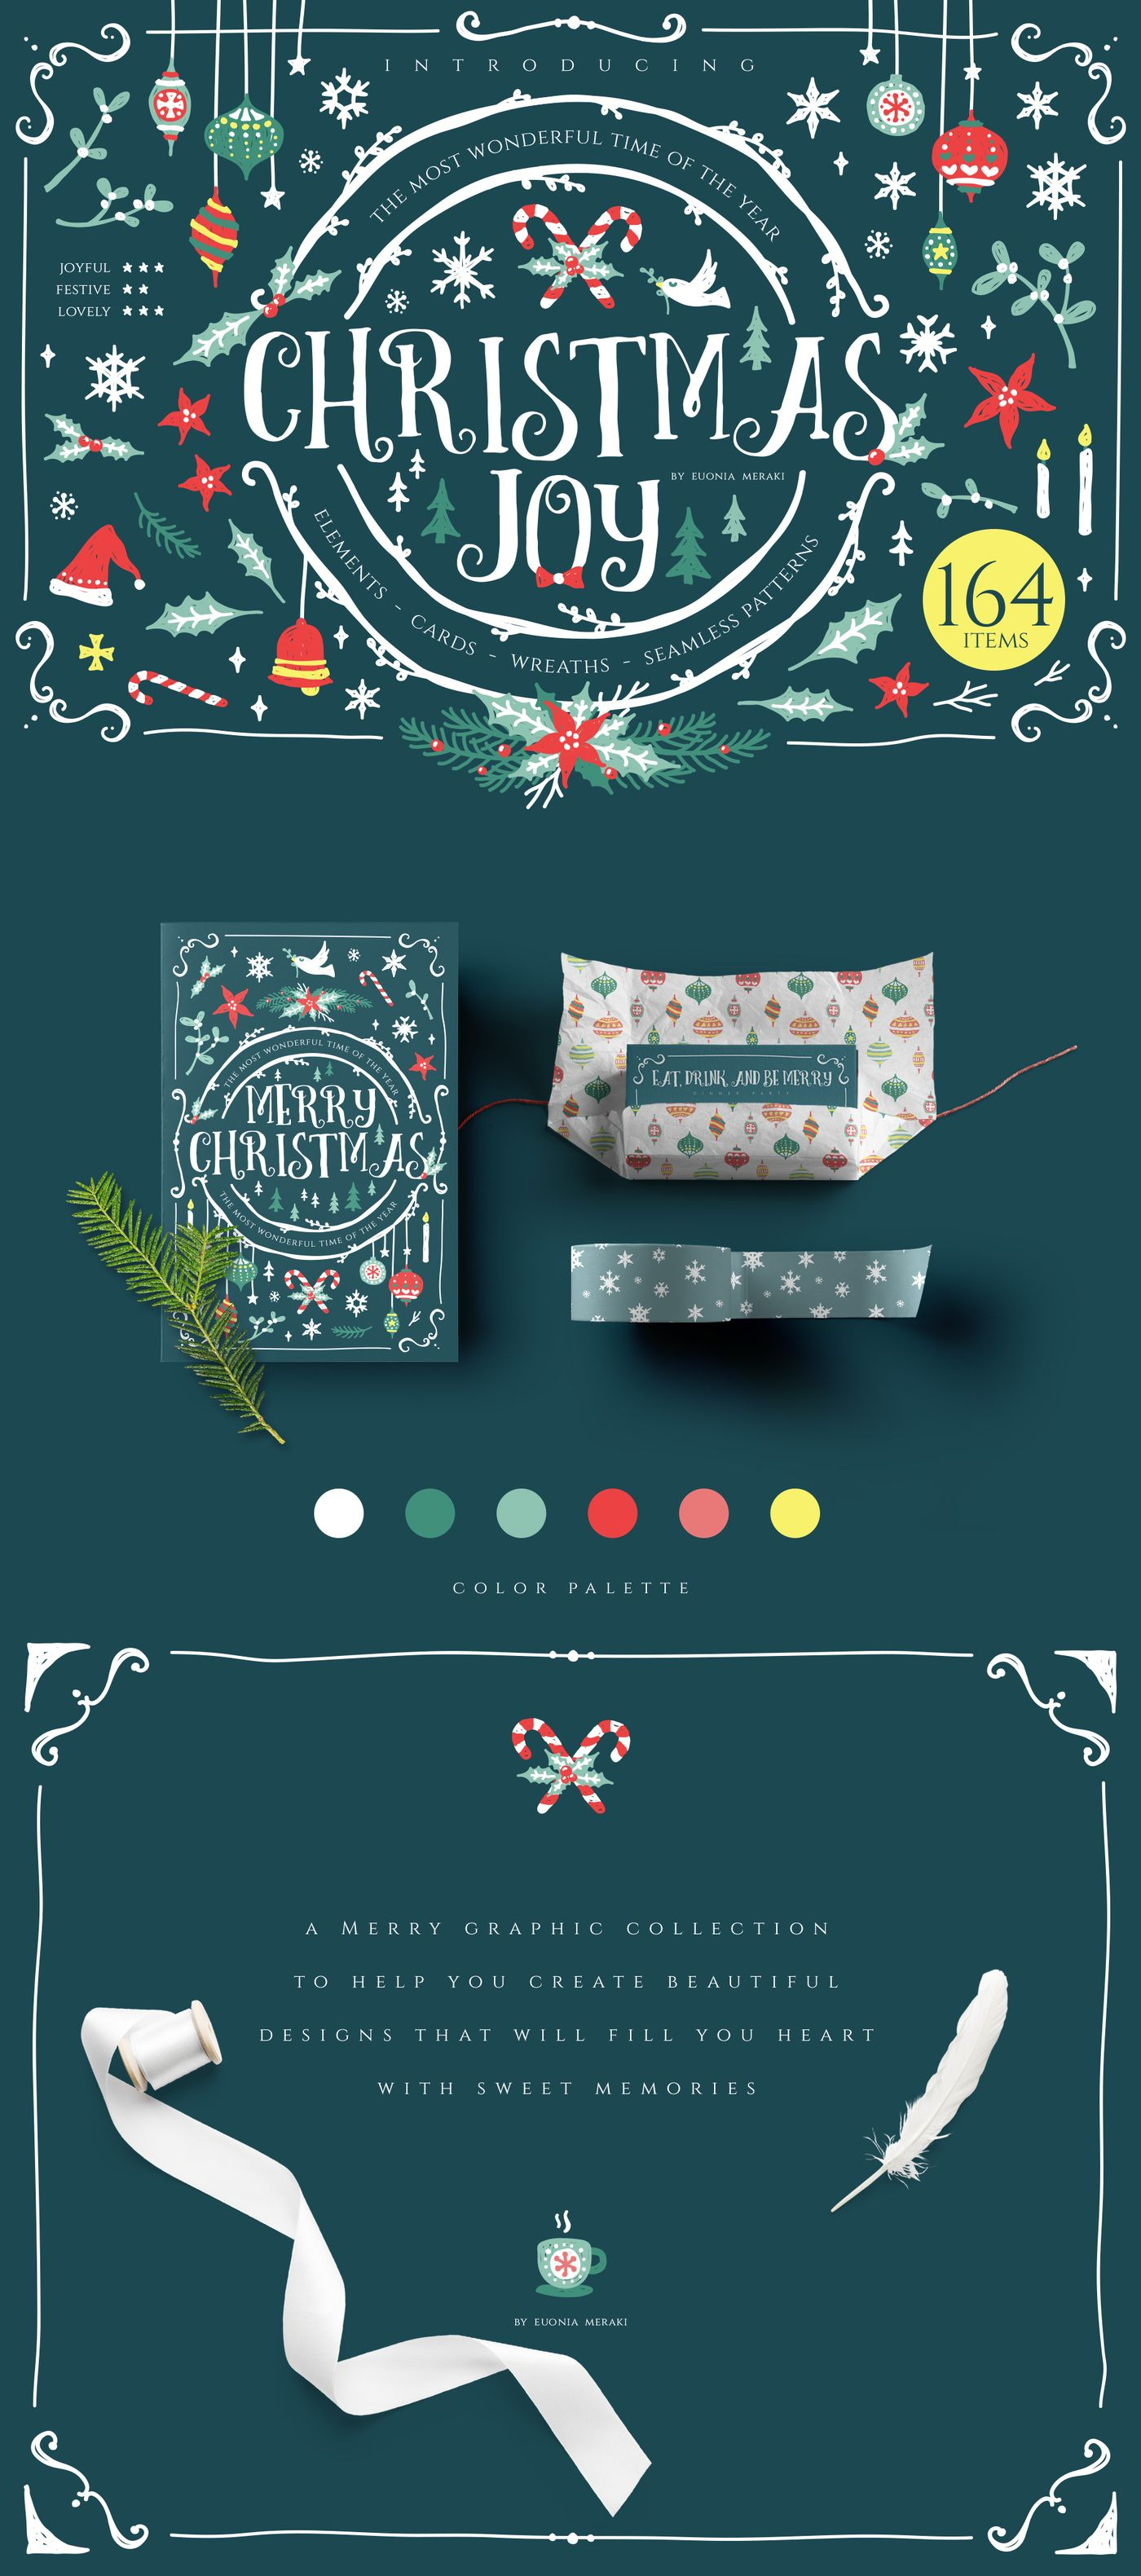 92fb6ef4a20a9 30%OFF Christmas Joy Graphic Pack by Euonia Meraki on  creativemarket  Warmest hugs for you all lovely people! ♥ Be prepared to celebrate the most  wonderful ...